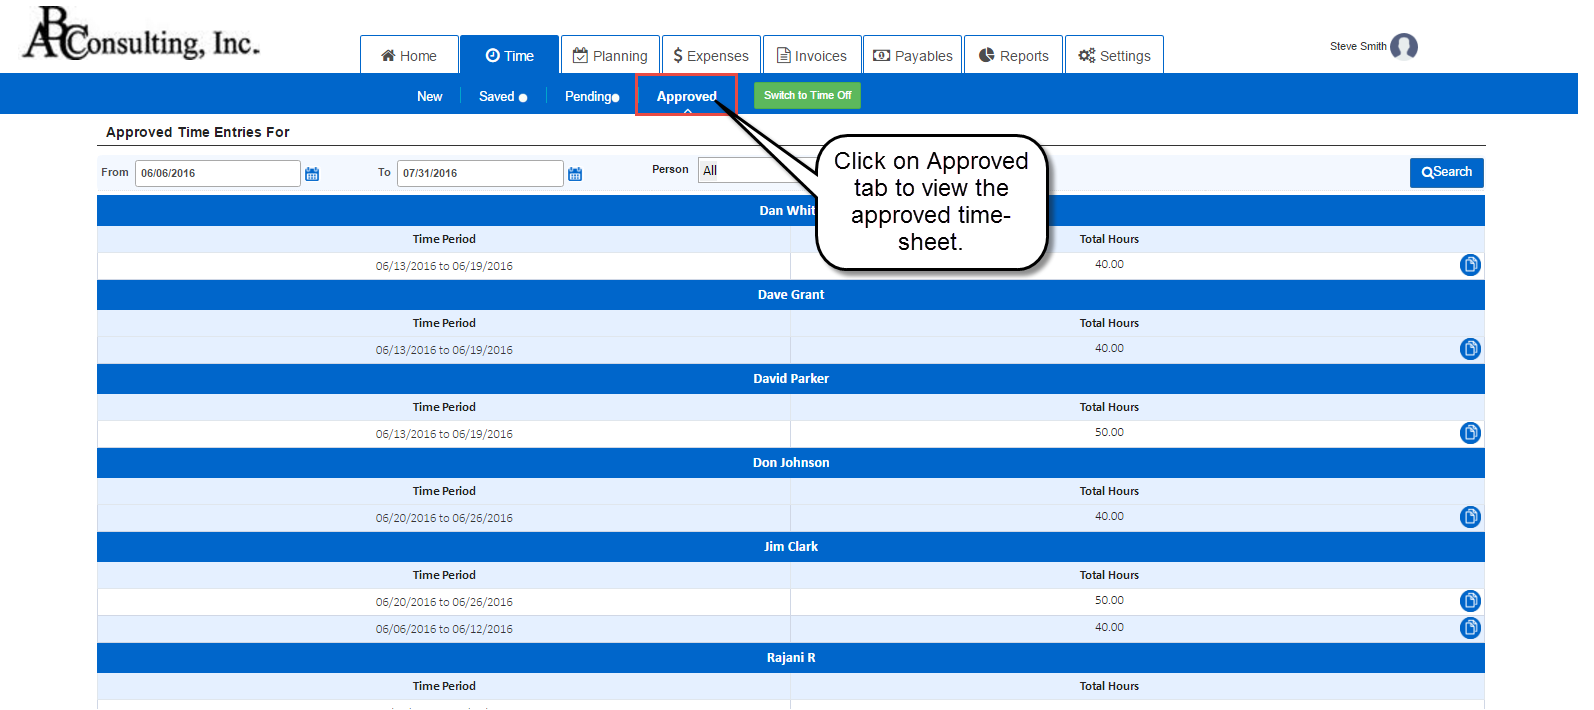 Approved timesheet view in AccountSight